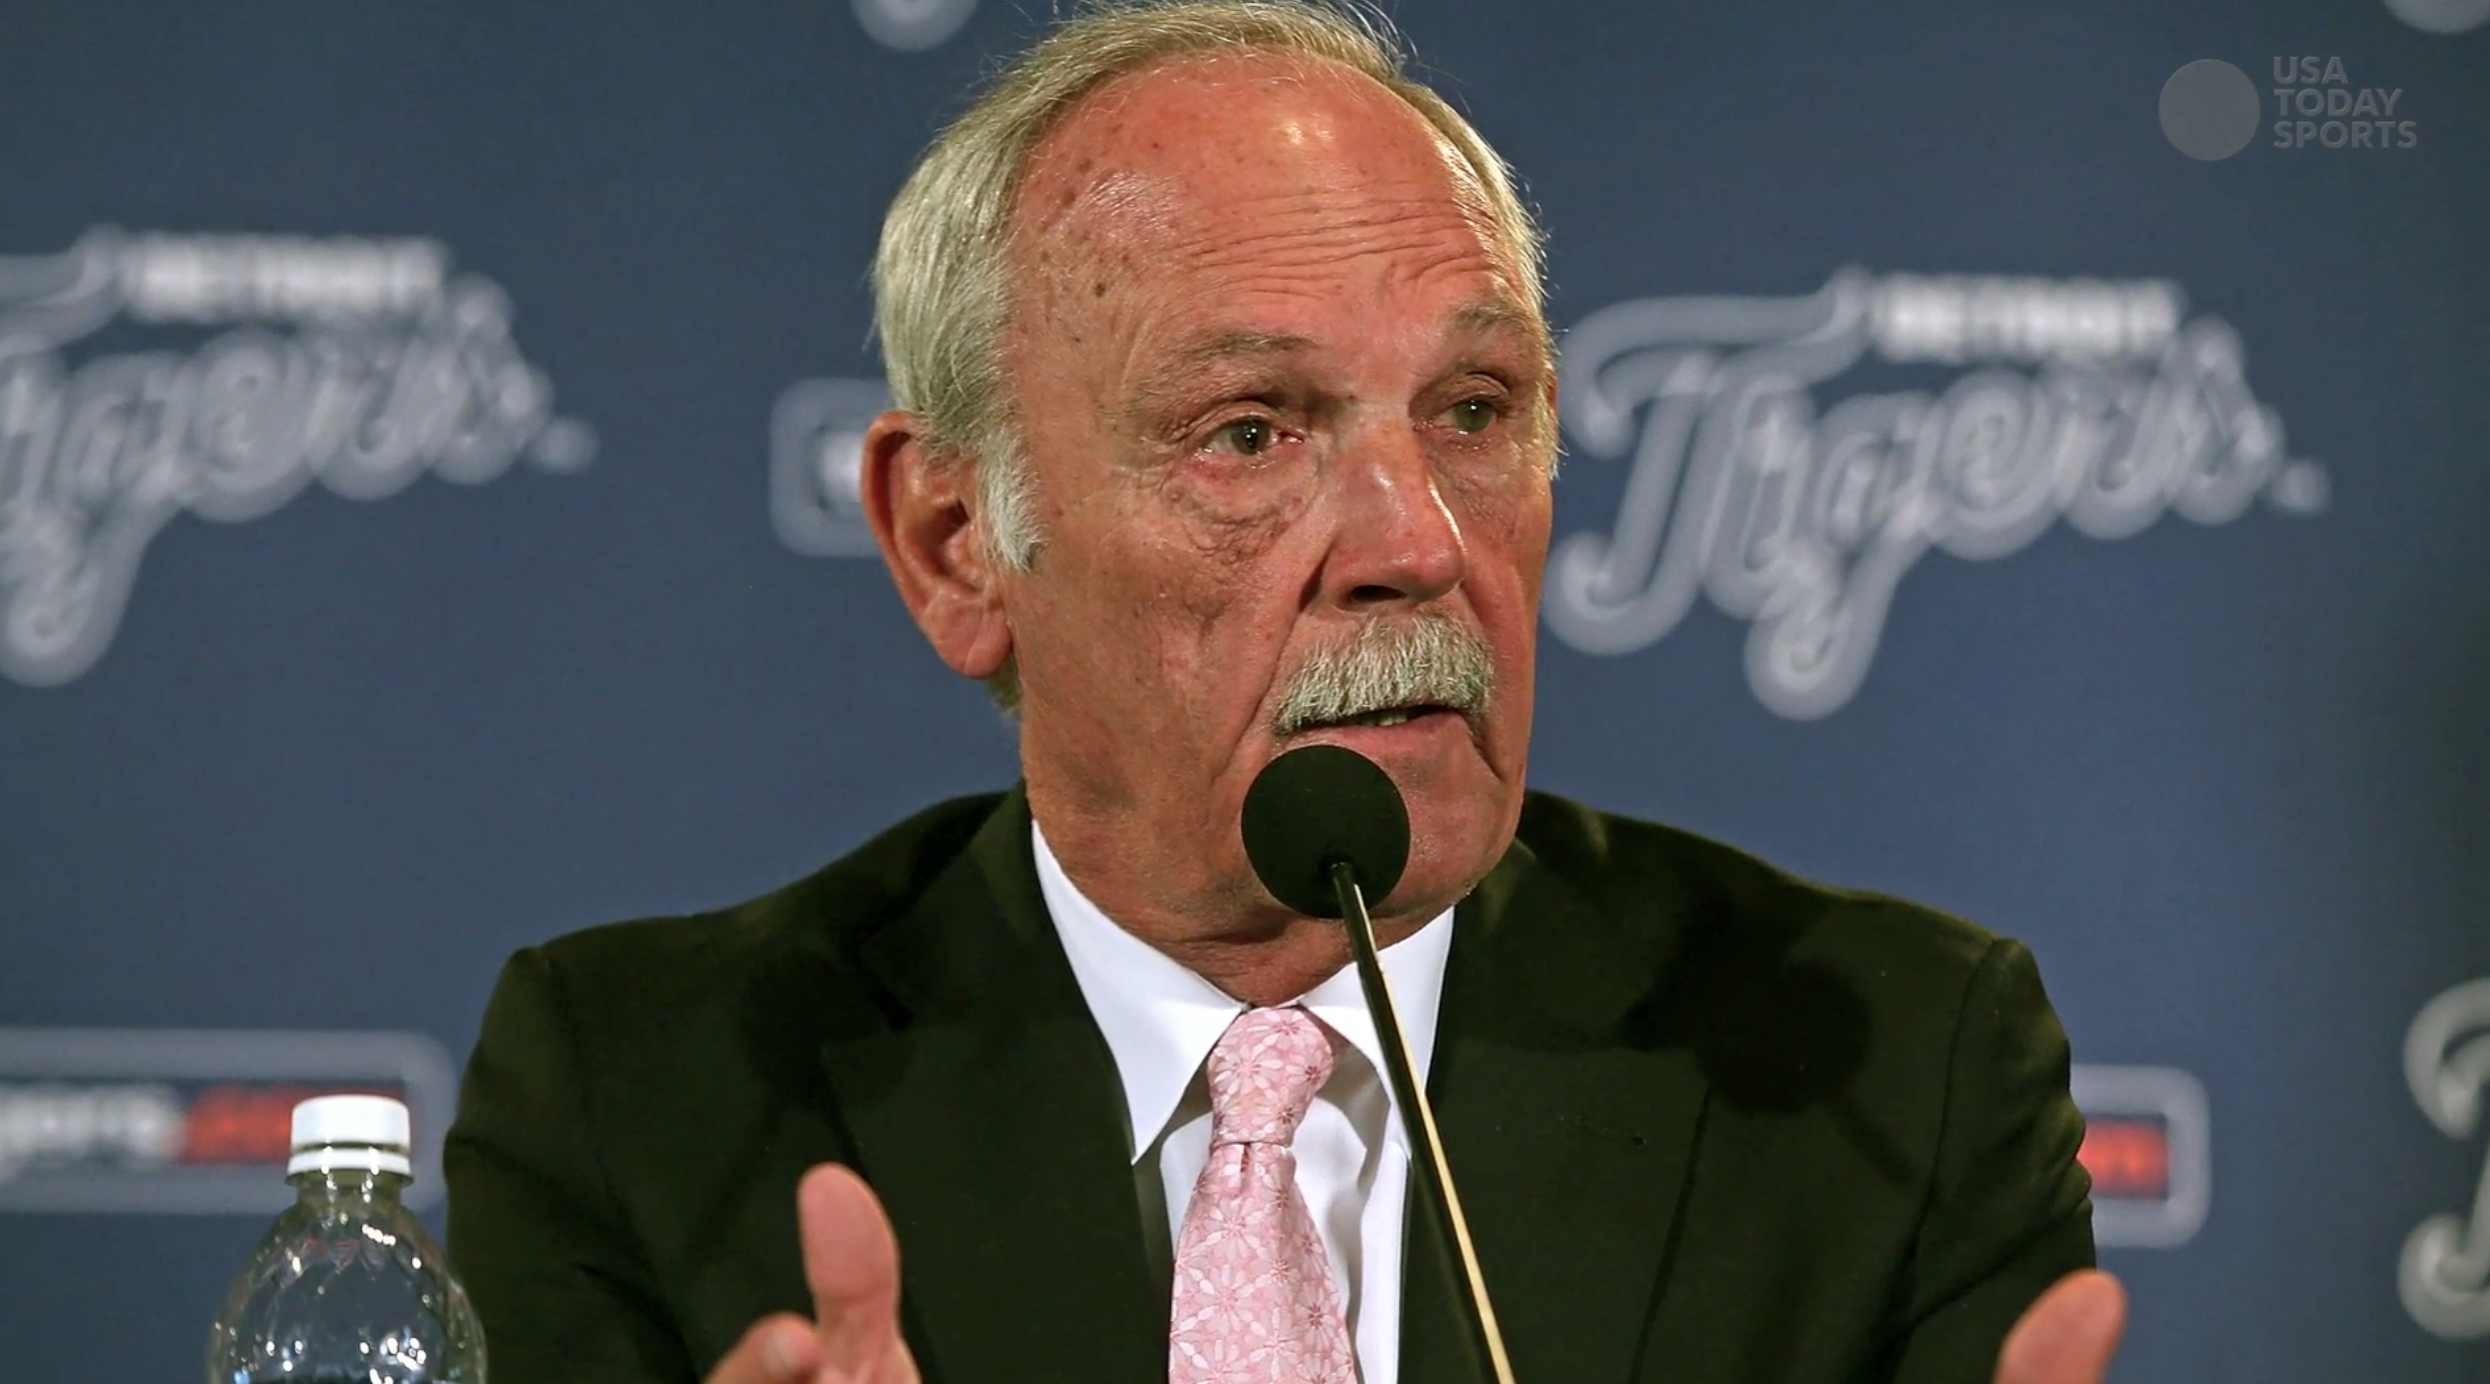 Tigers manager Jim Leyland stepping down